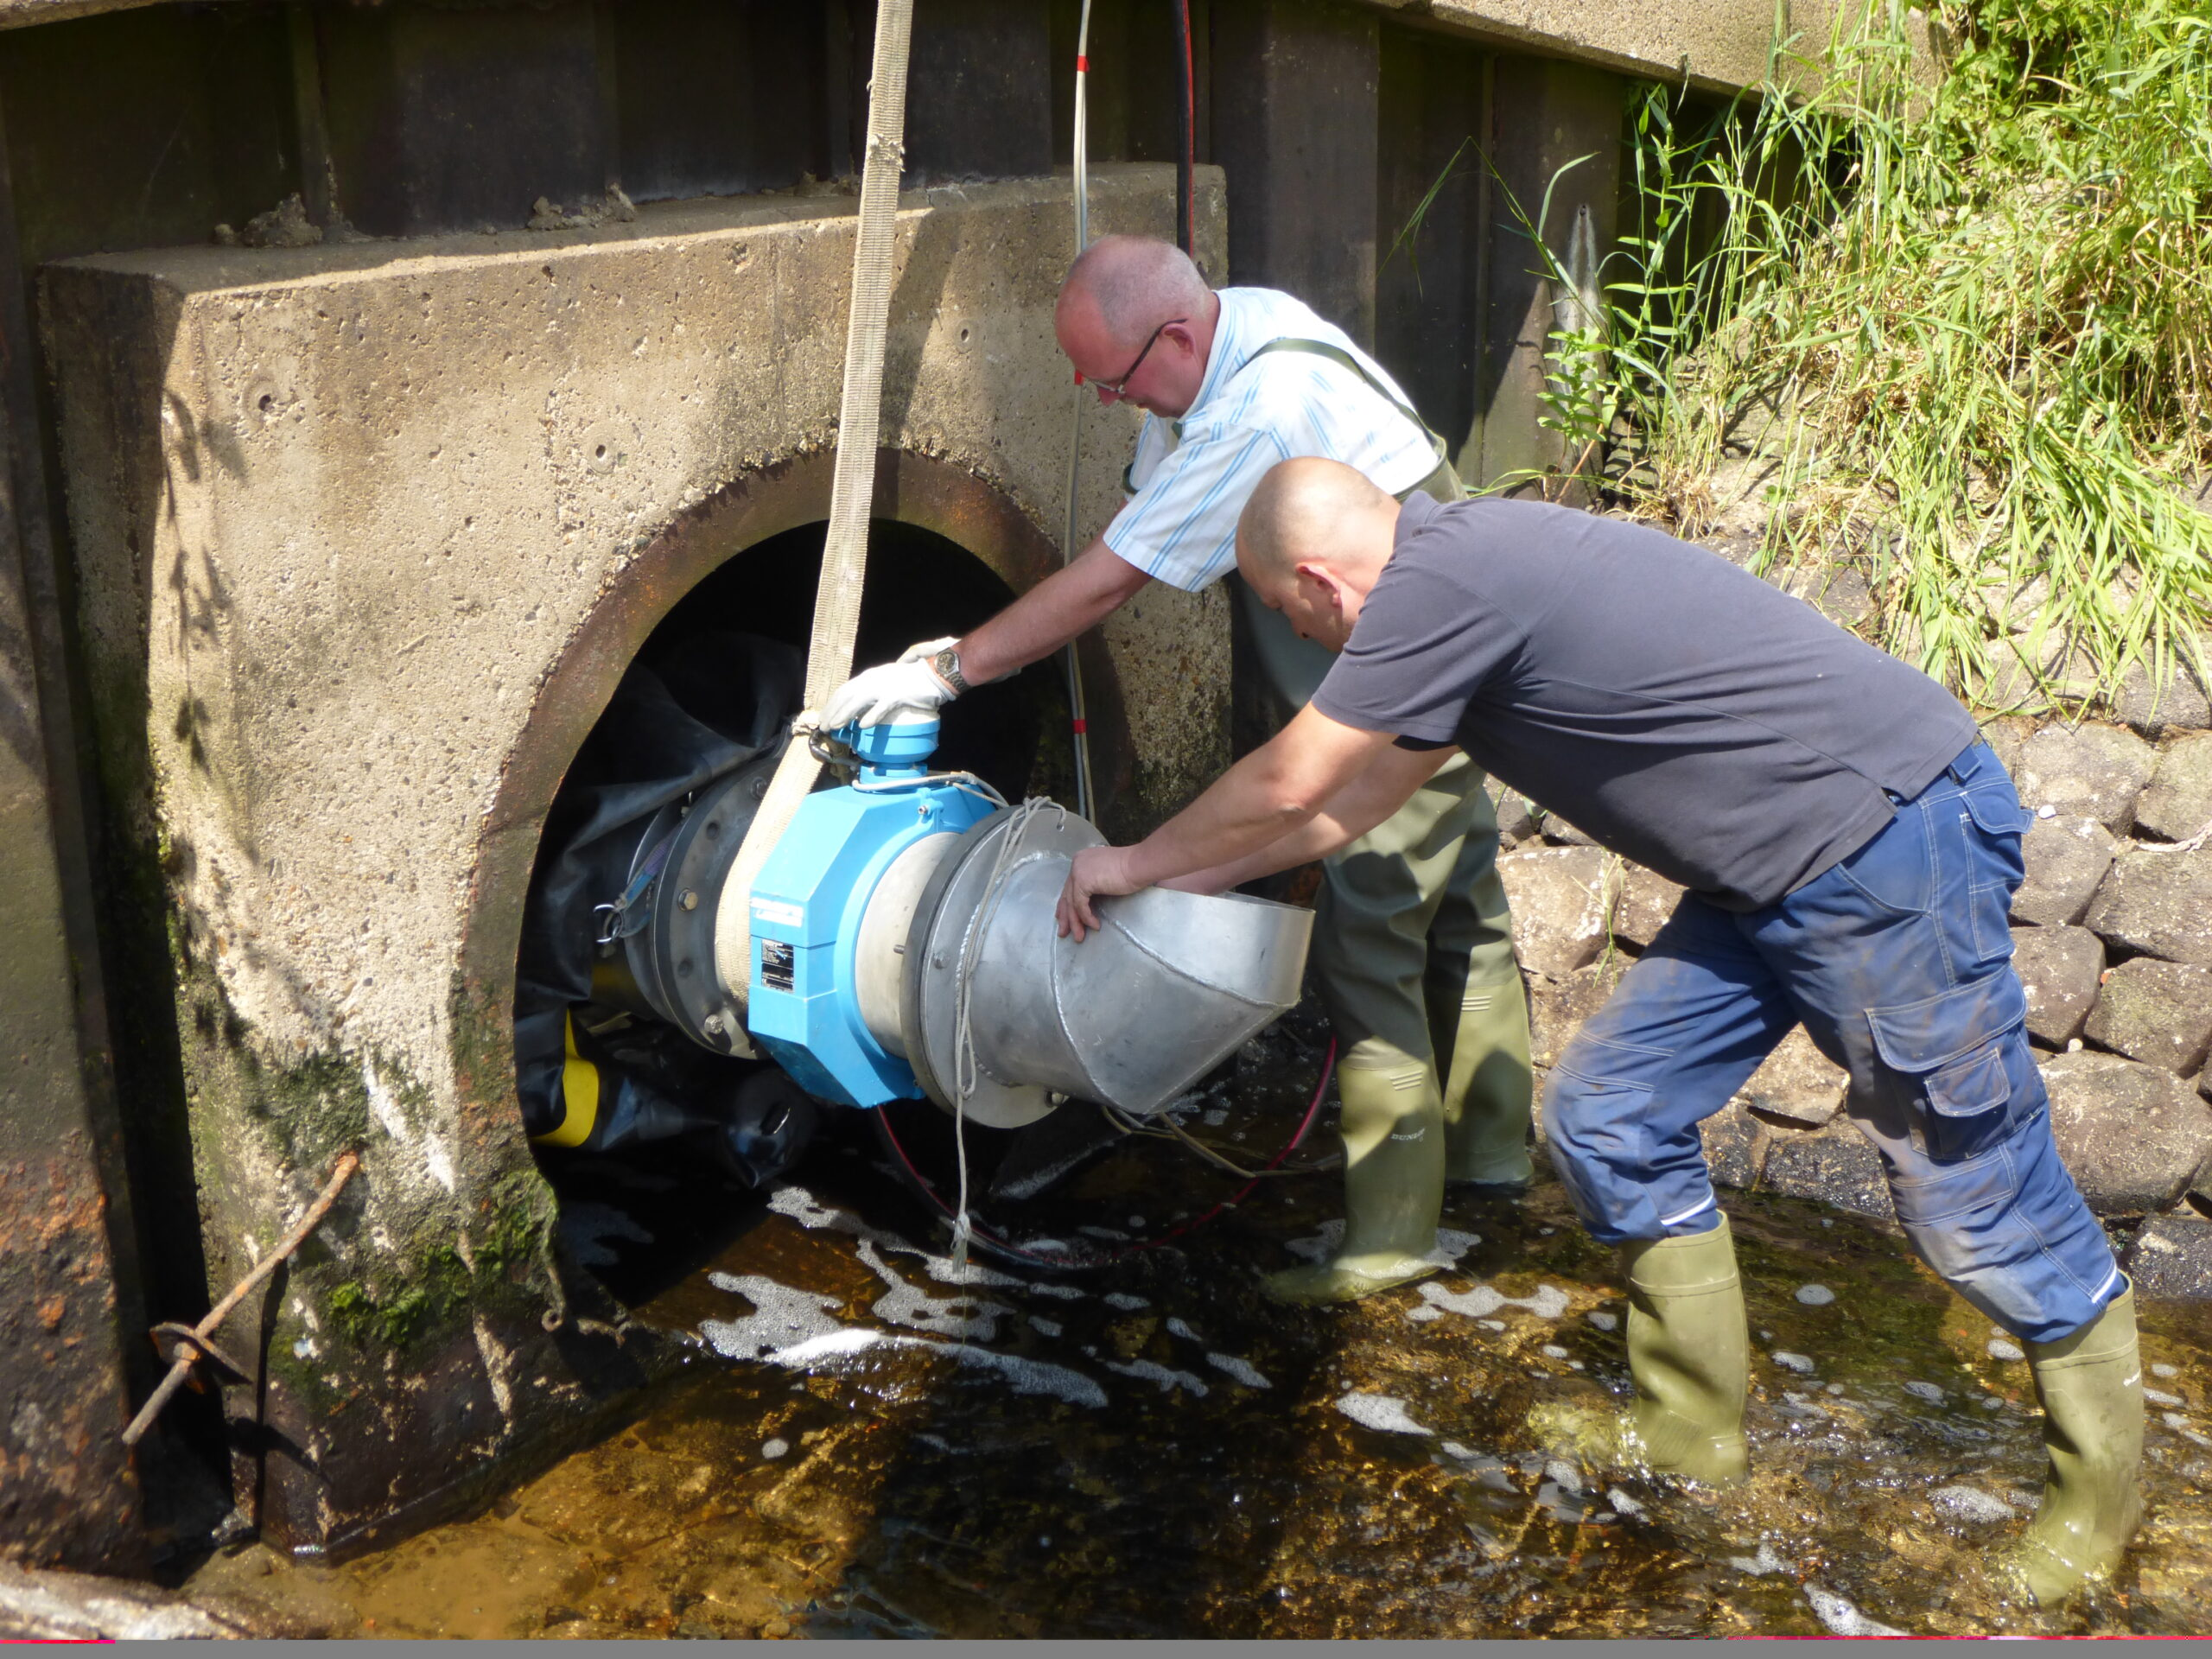 No space yet accurately measures water flow • NL pump